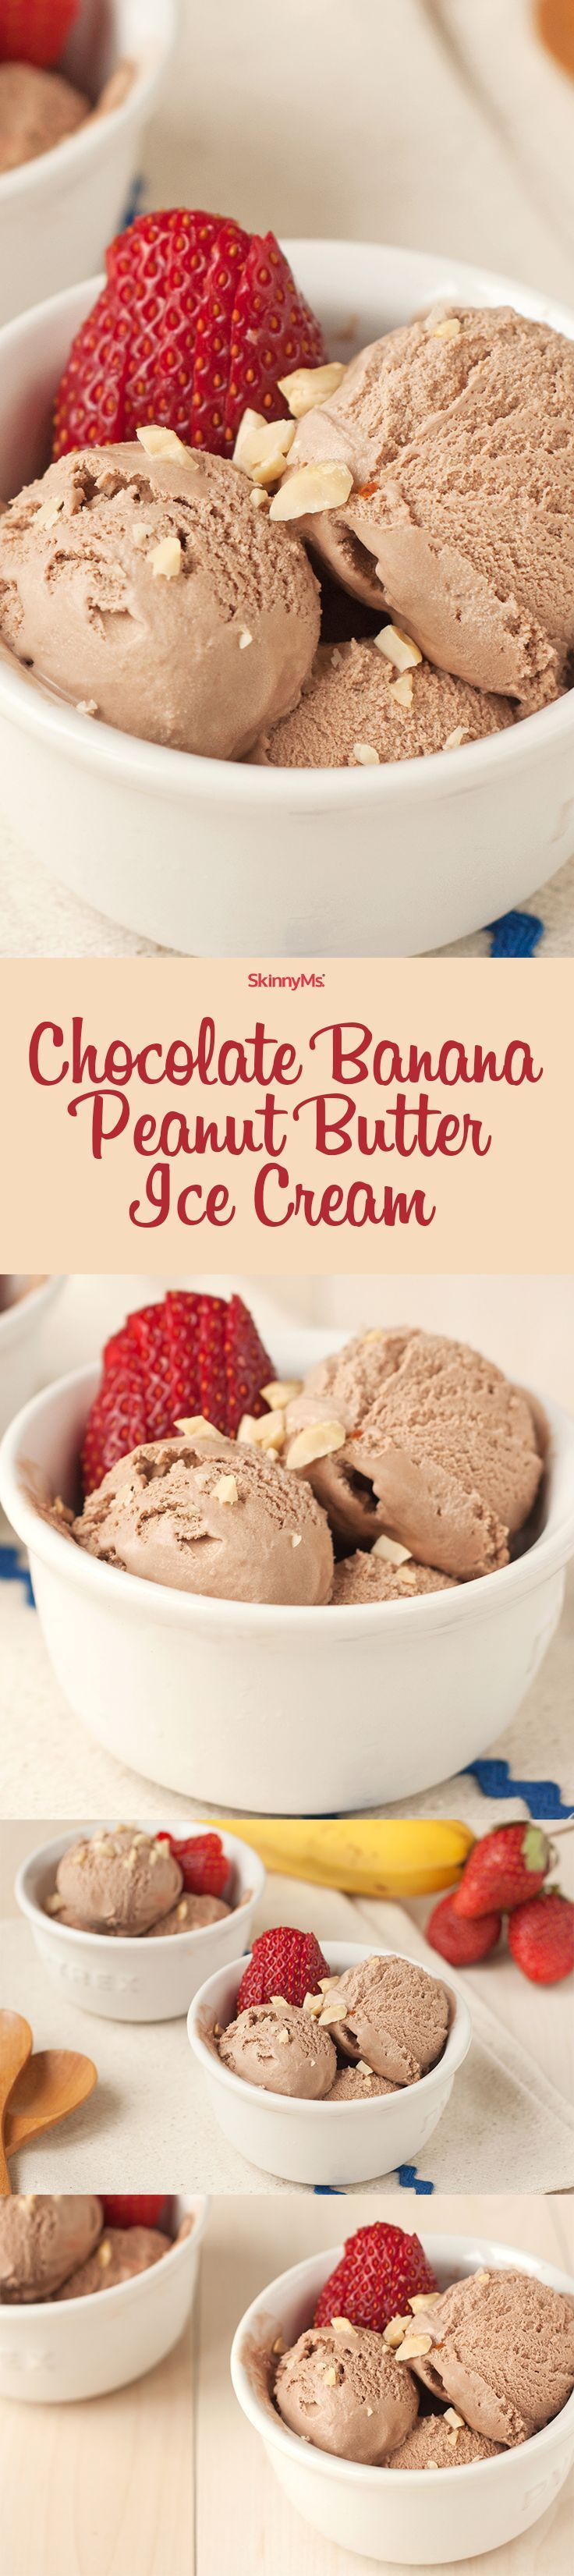 Enjoy our Chocolate Peanut Butter Banana Ice Cream for a high protein, healthy snack that feels incredibly indulgent and won't break your waistline!